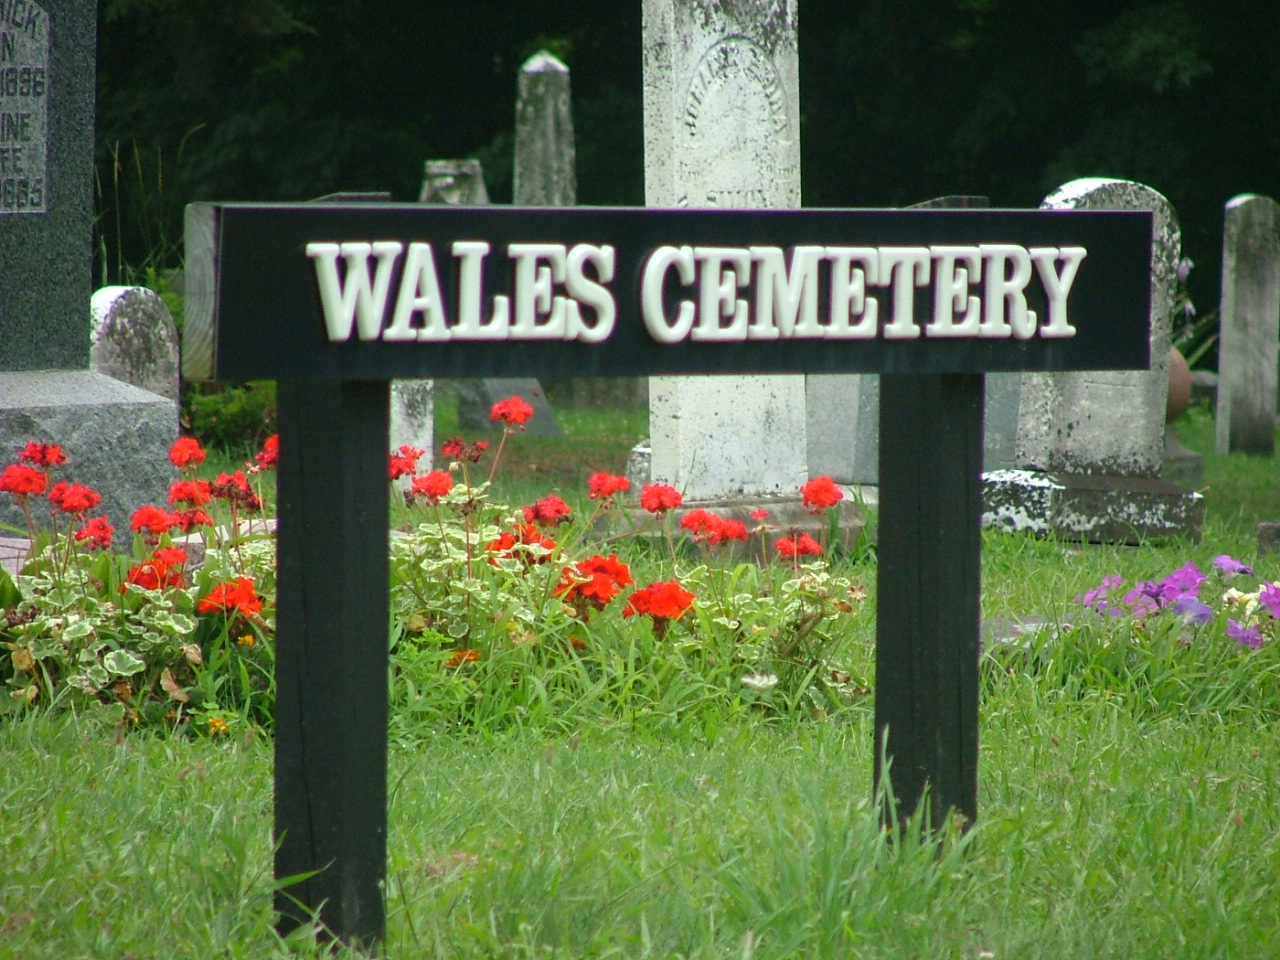 Wales Cemetery